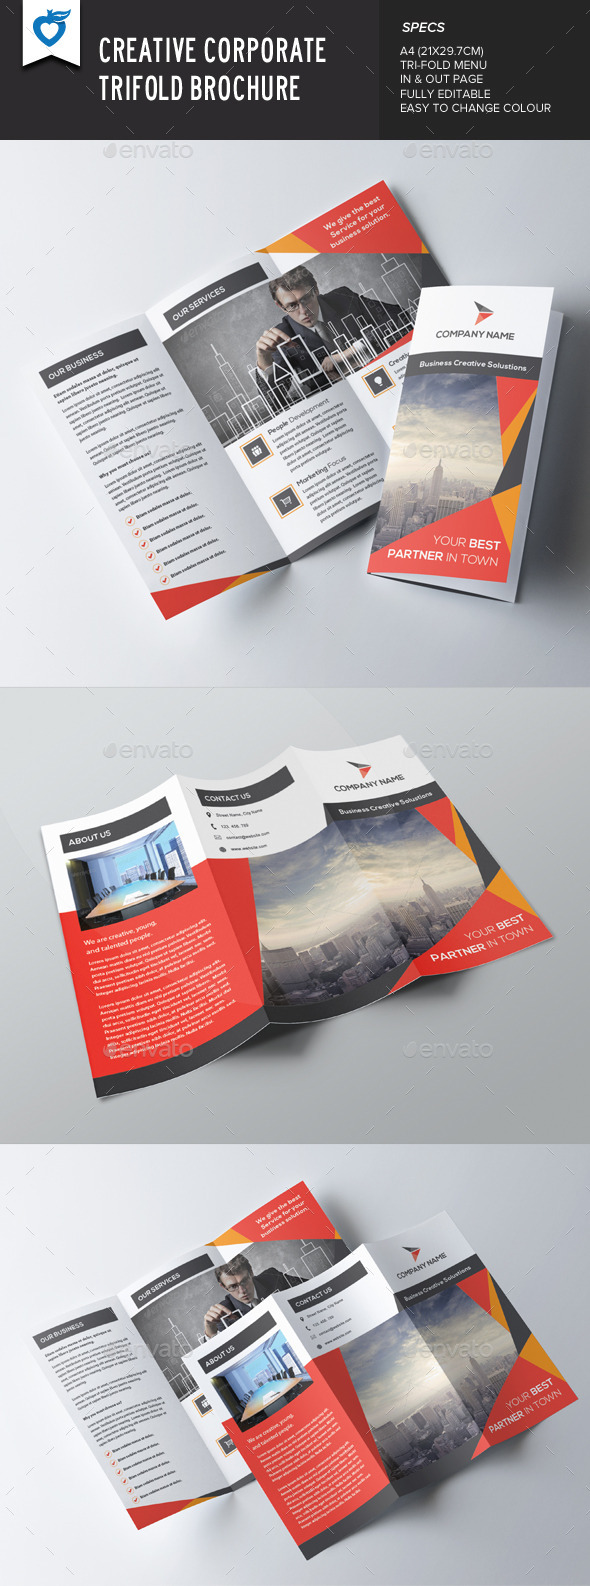 GraphicRiver Creative Corporate Trifold 8837996